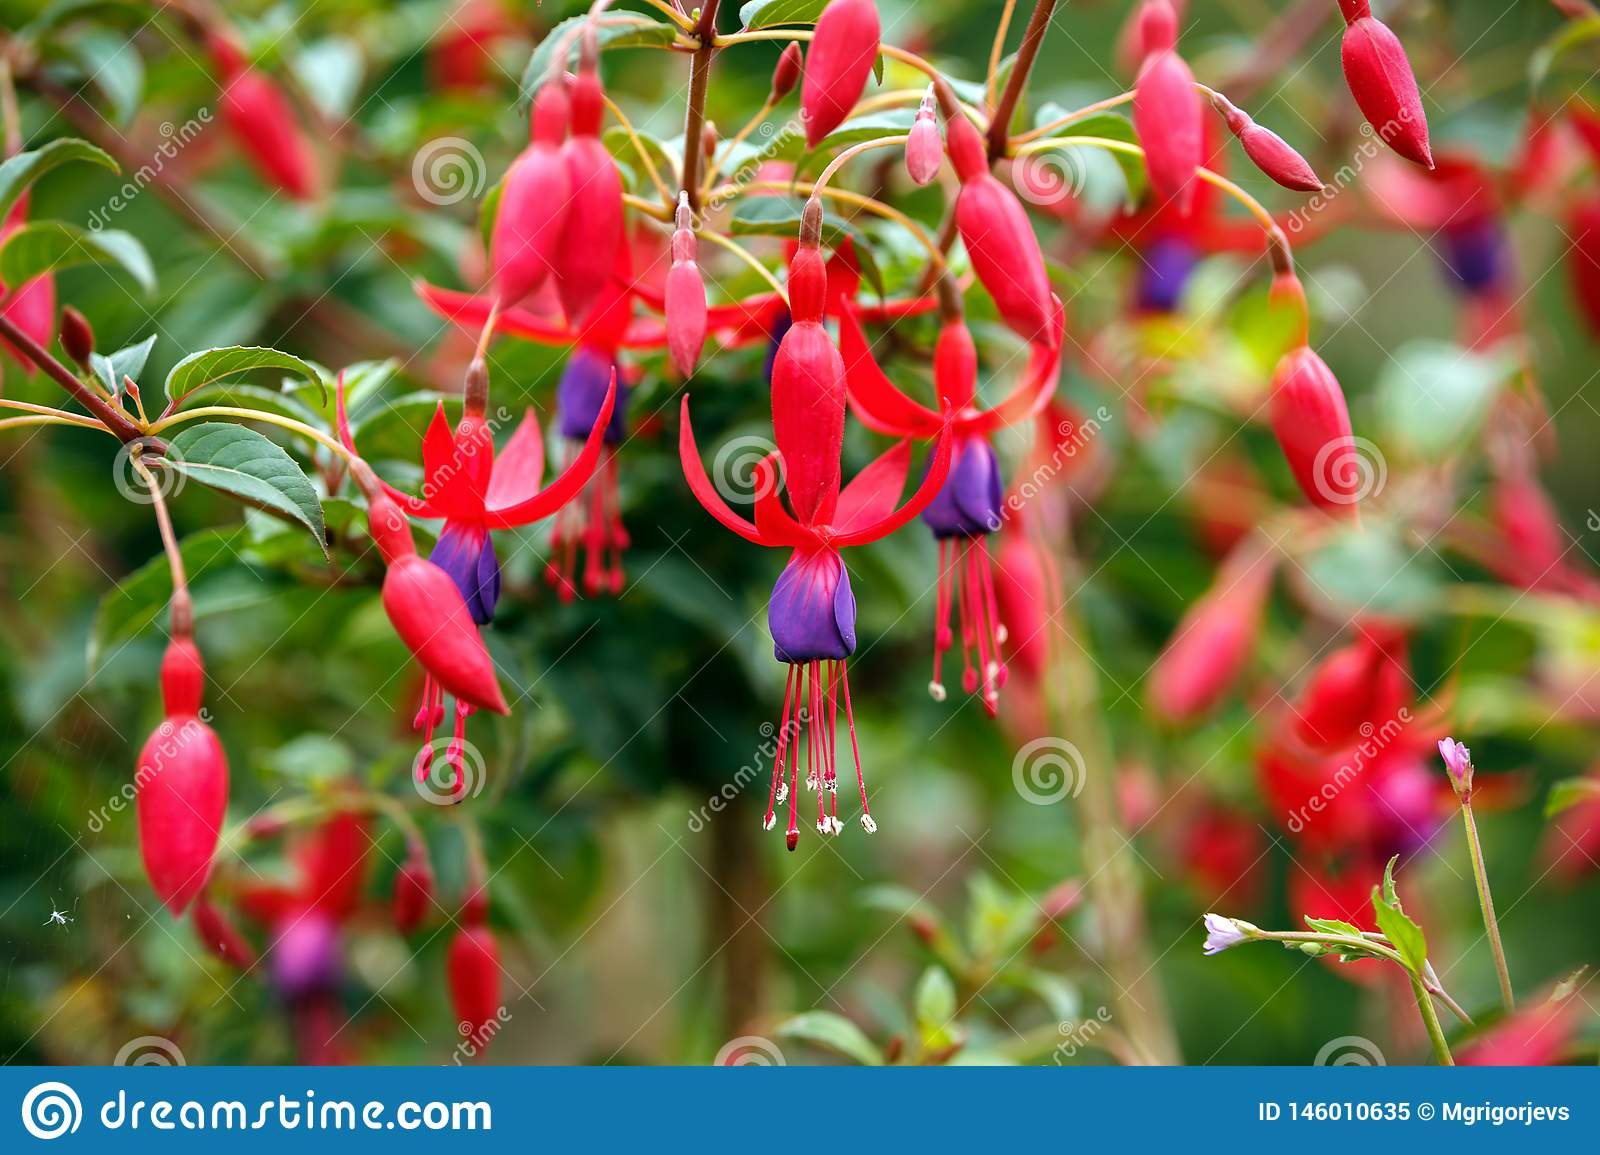 Fuchsia blossom closeup in home green garden